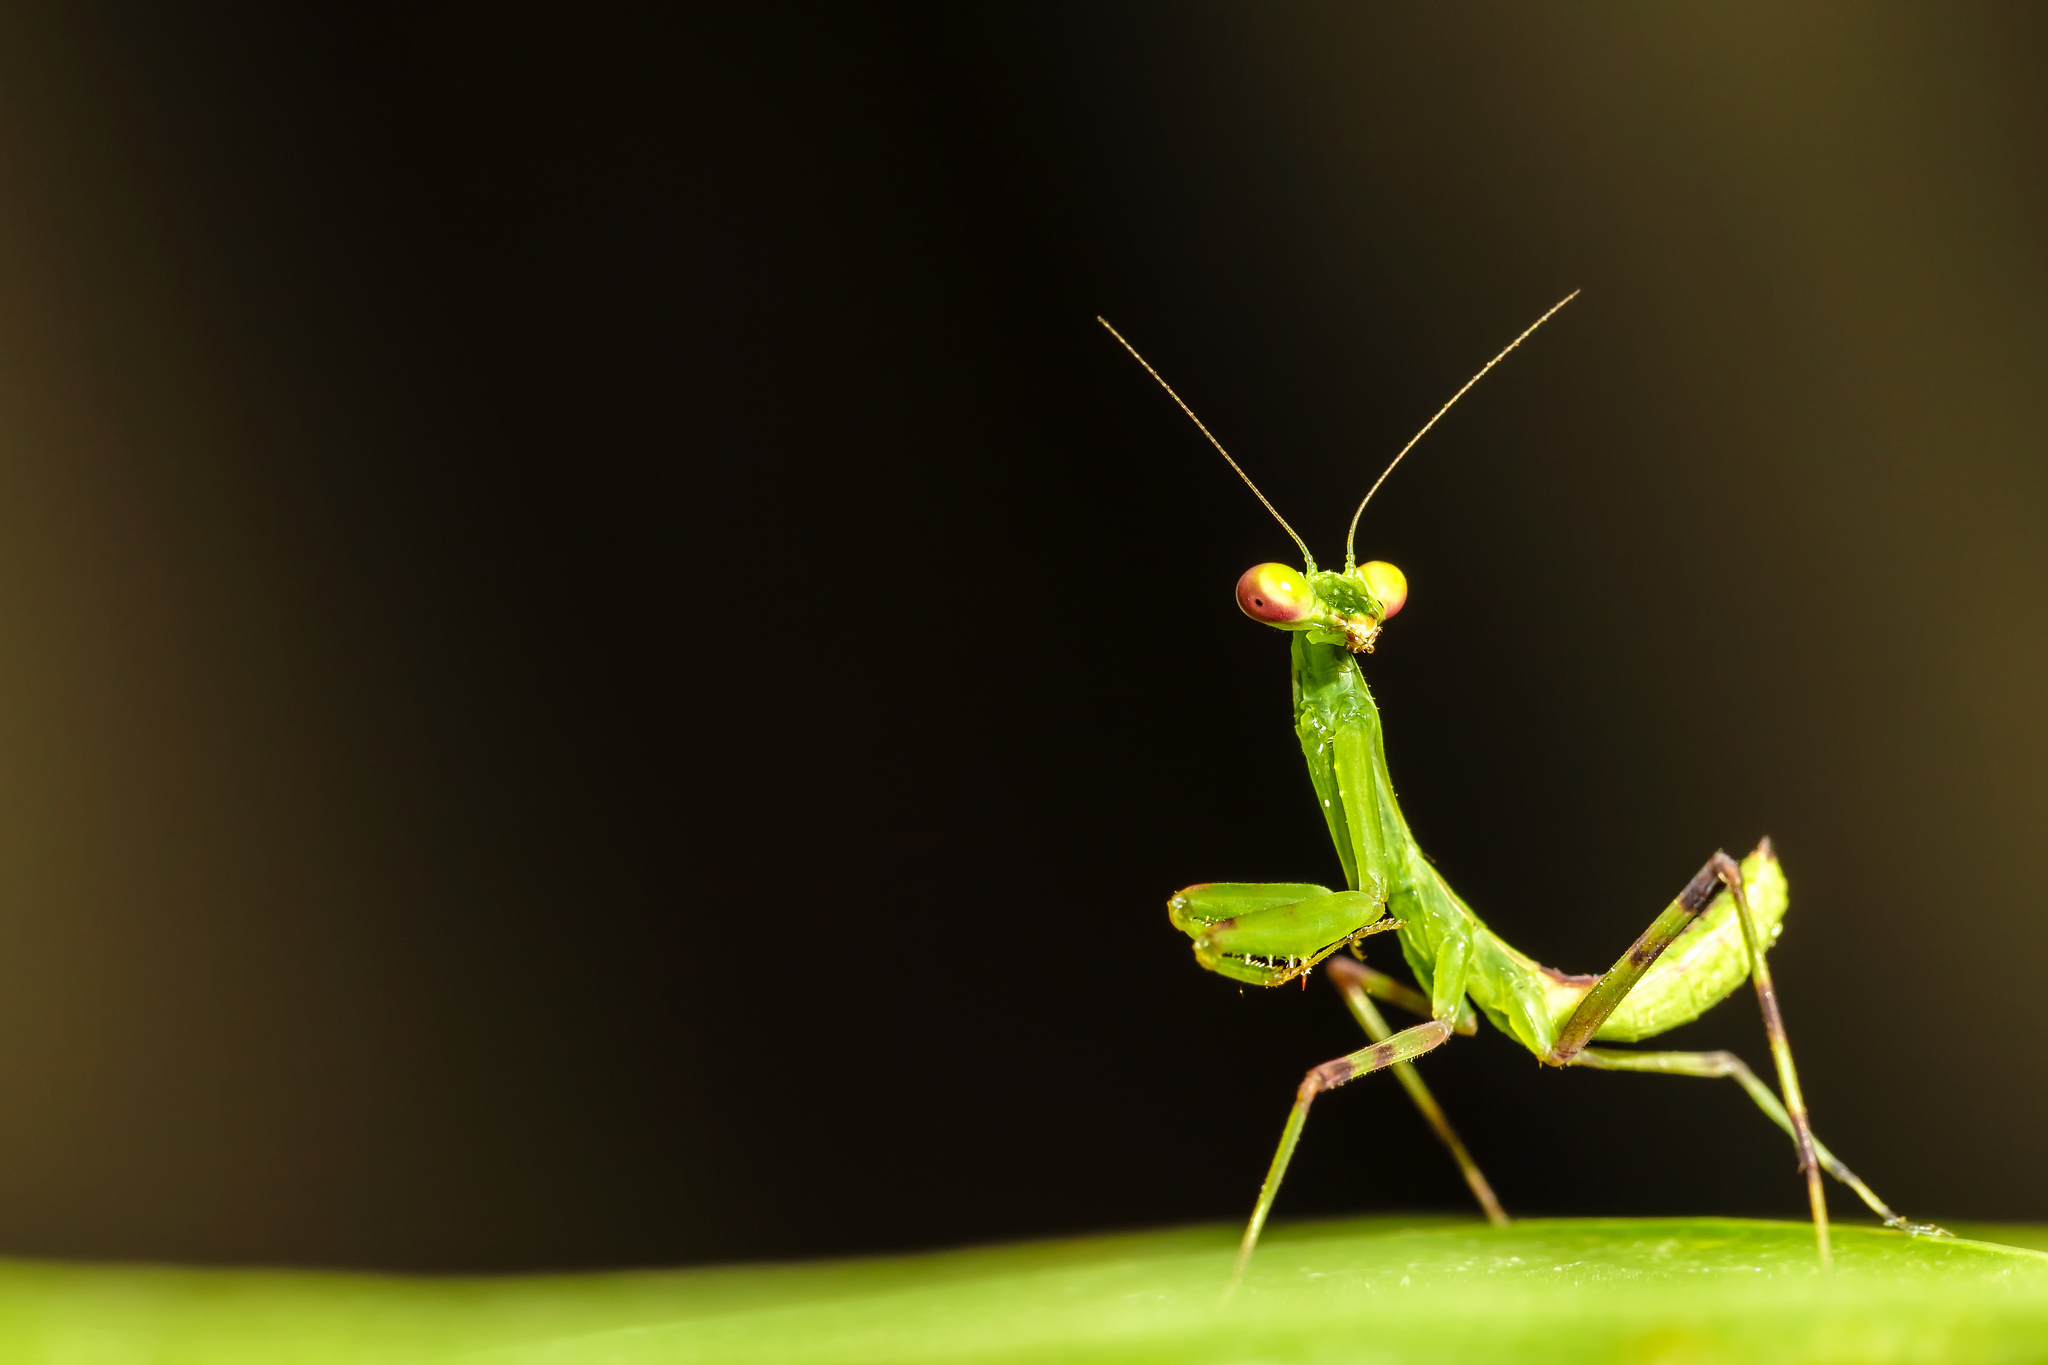 the background of the praying mantis Find praying mantis stock images in hd and millions of other royalty-free stock photos, illustrations, and vectors in the shutterstock collection thousands of new, high-quality pictures added every day.